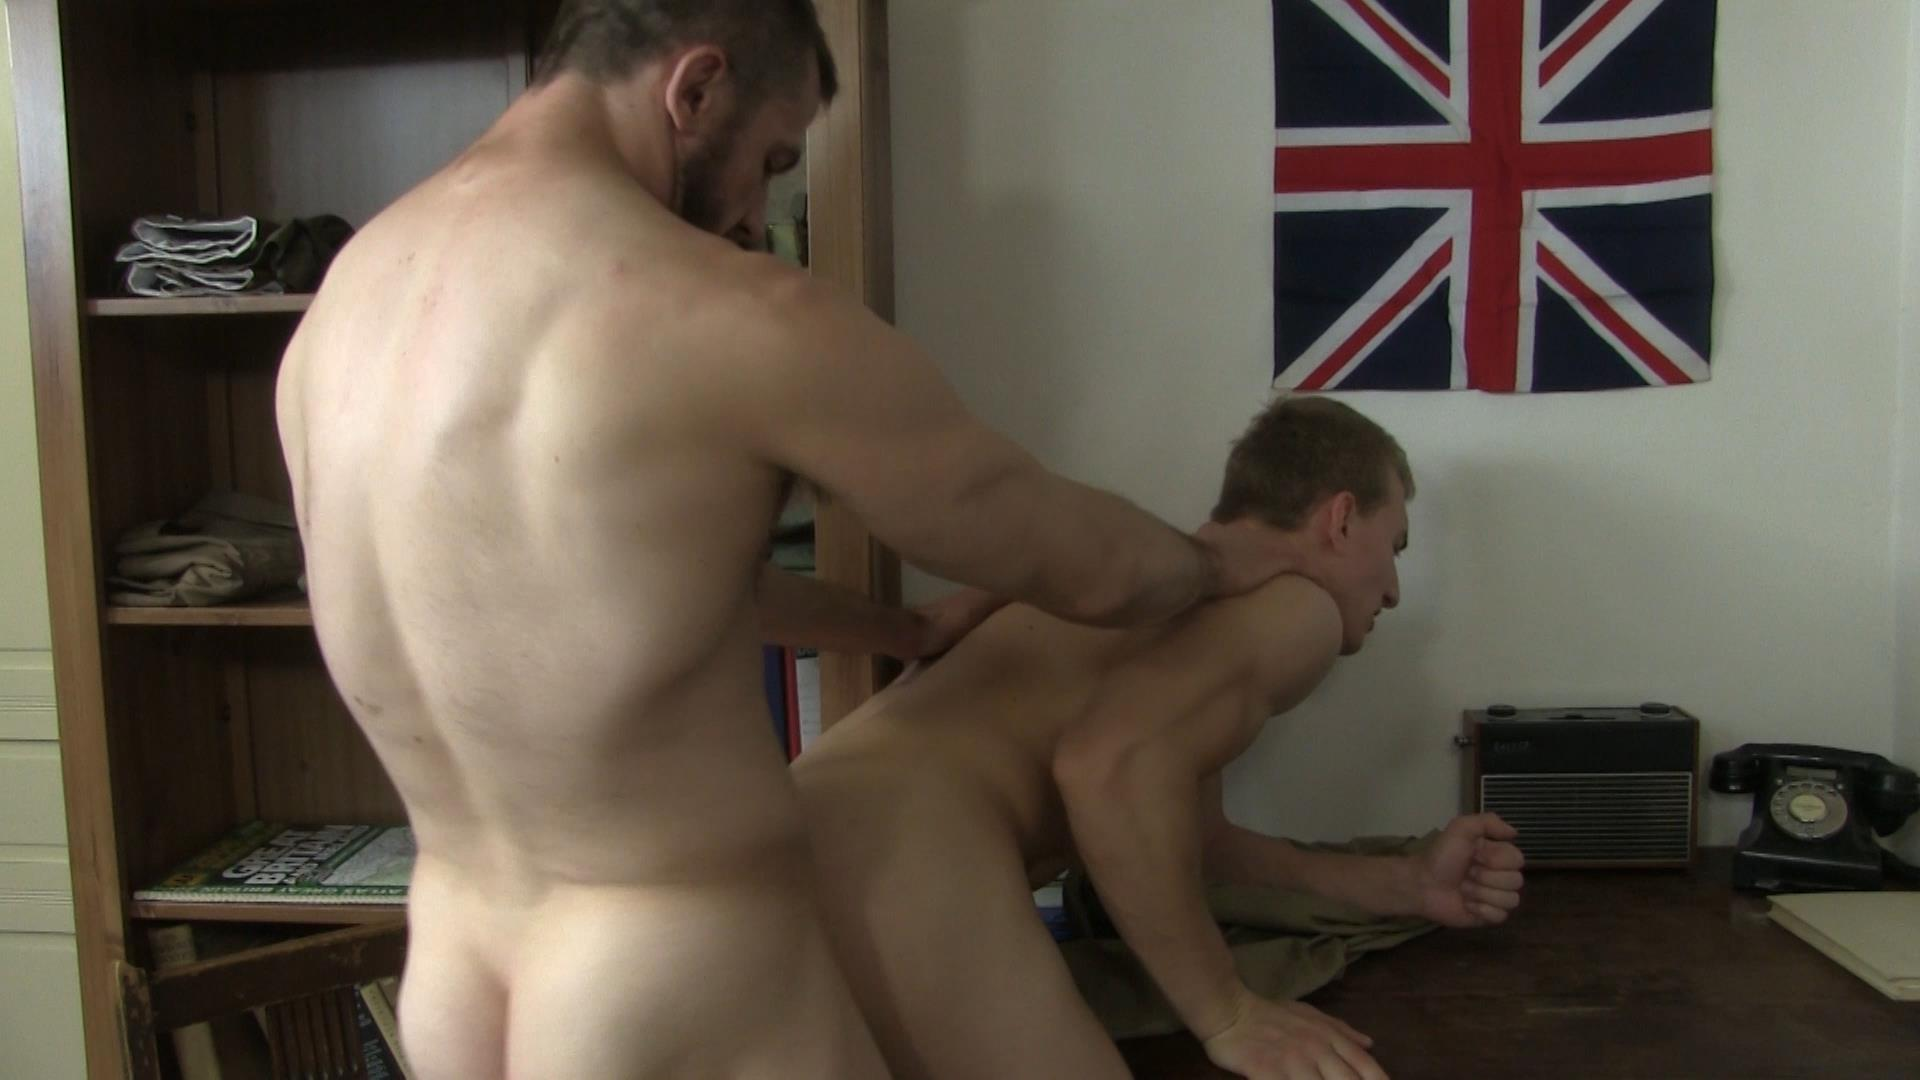 Bareback-Me-Daddy-Eric-Lenn-and-Ryan-Torres-Twink-Fucked-By-Older-man-Amateur-Gay-Porn-21 Twink Gets Bareback Fucked By An Older Scoutmaster